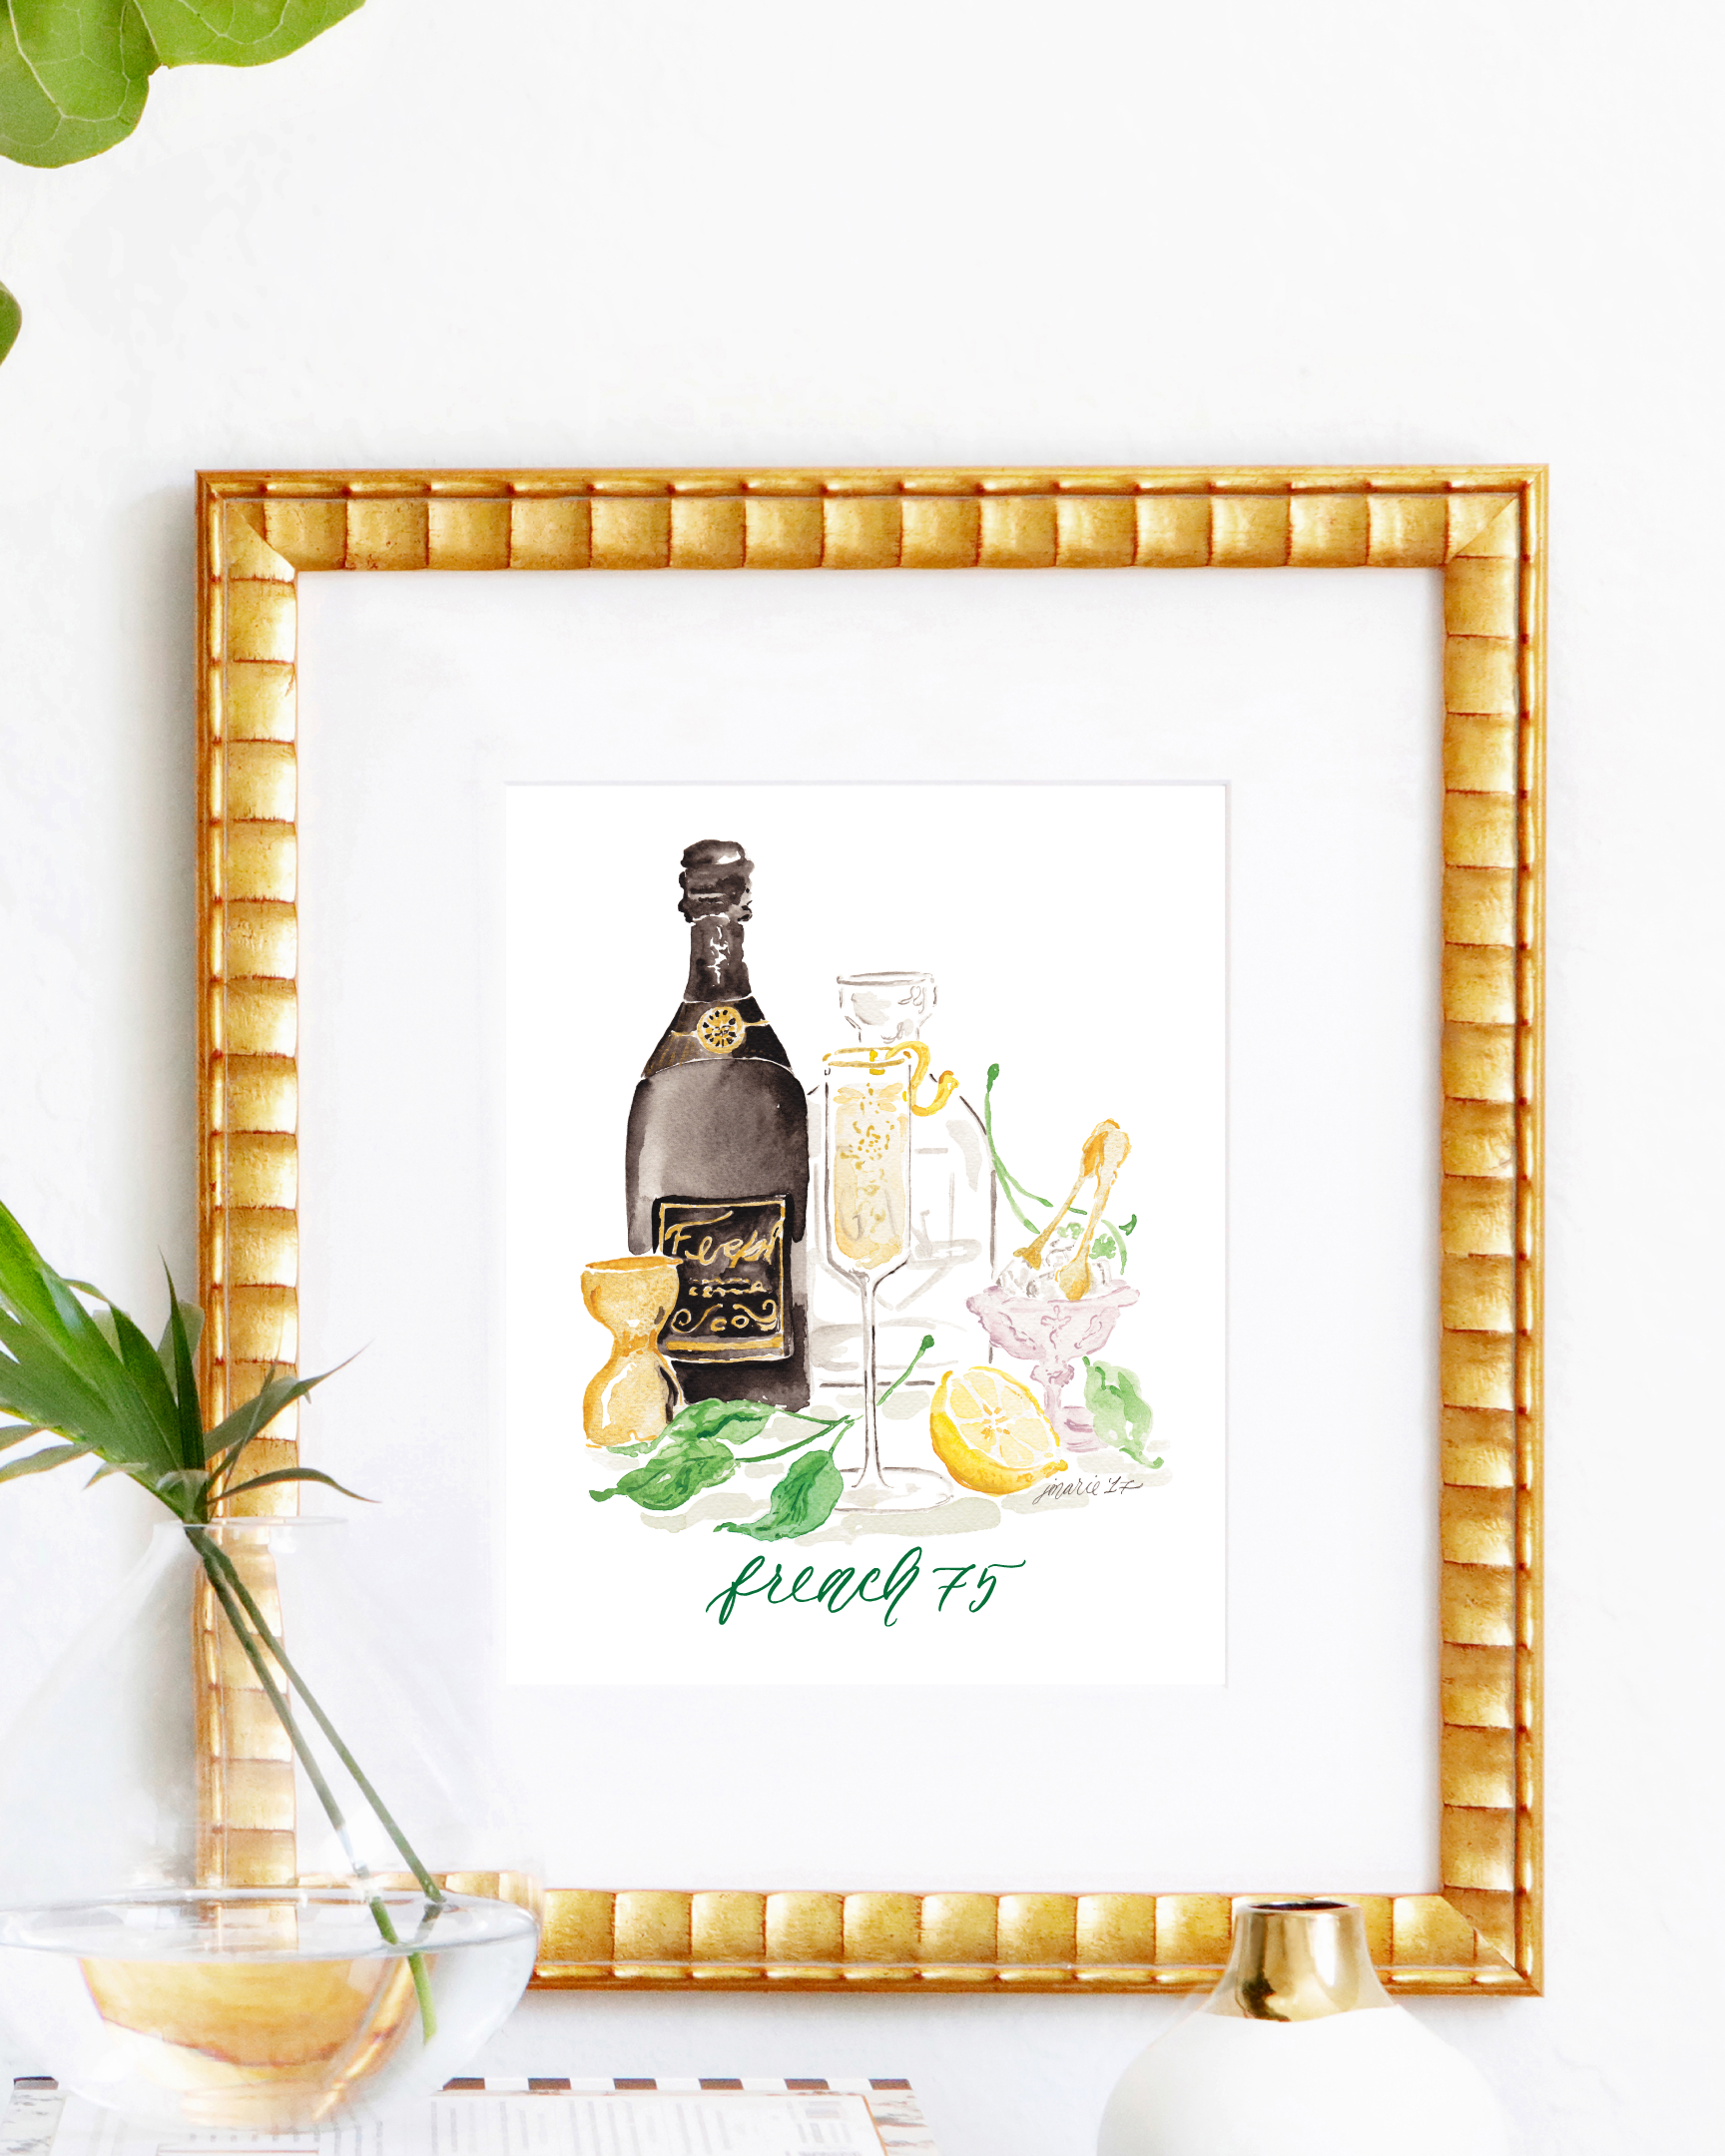 Classic French 75 cocktail recipe | French 75 watercolor art print by Simply Jessica Marie | SC Stockshop